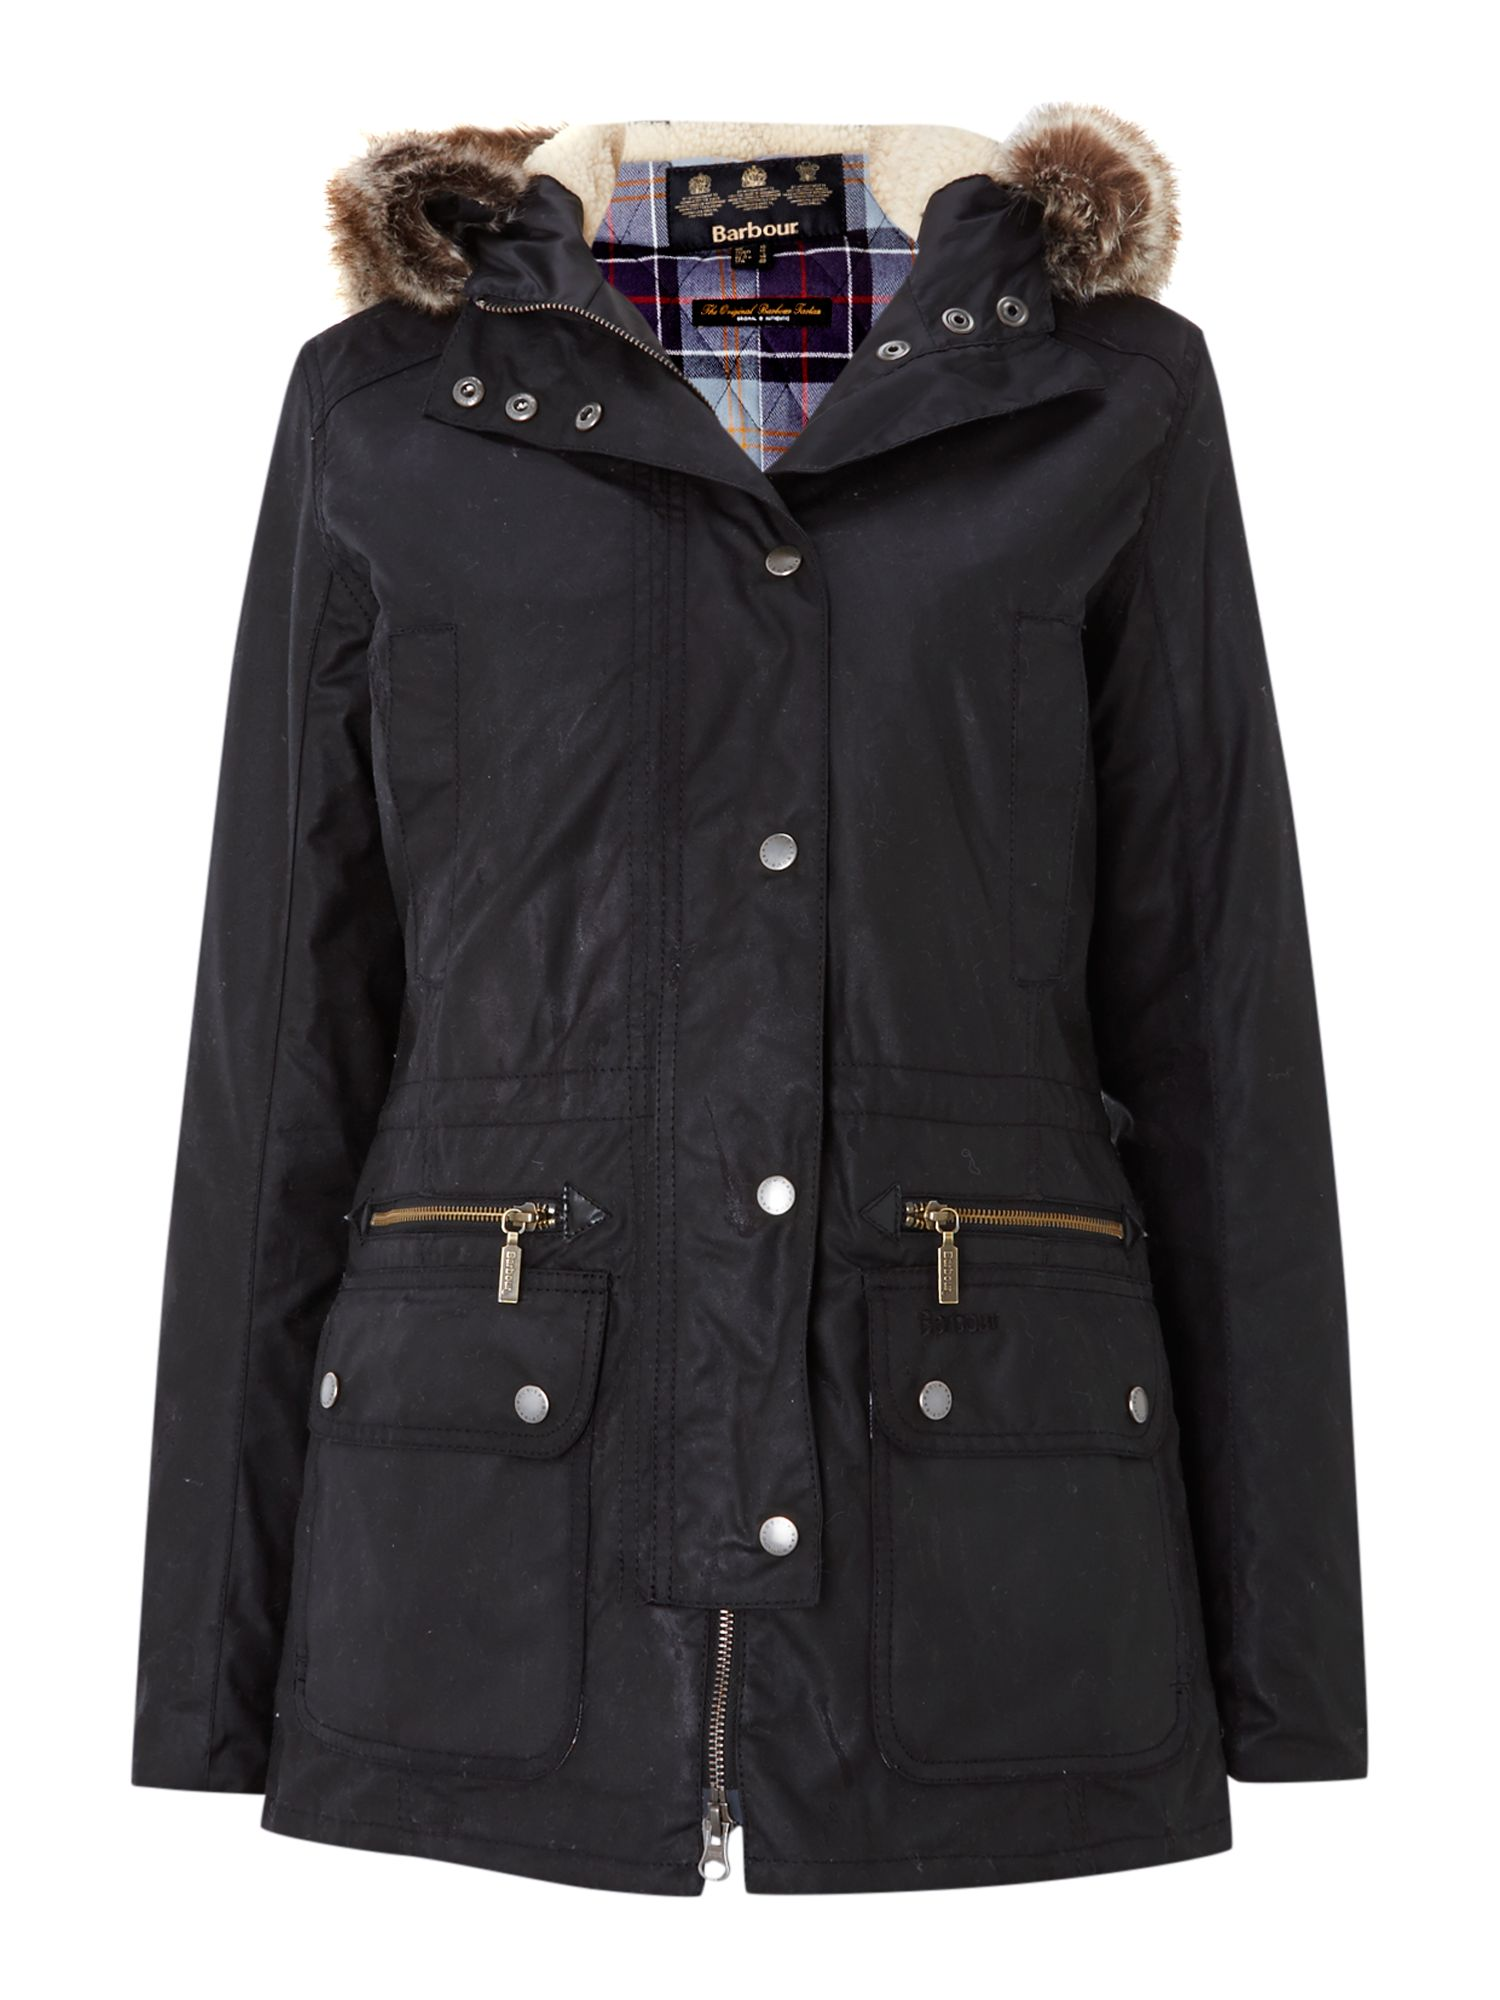 Barbour Kelsall waxed jacket, Black